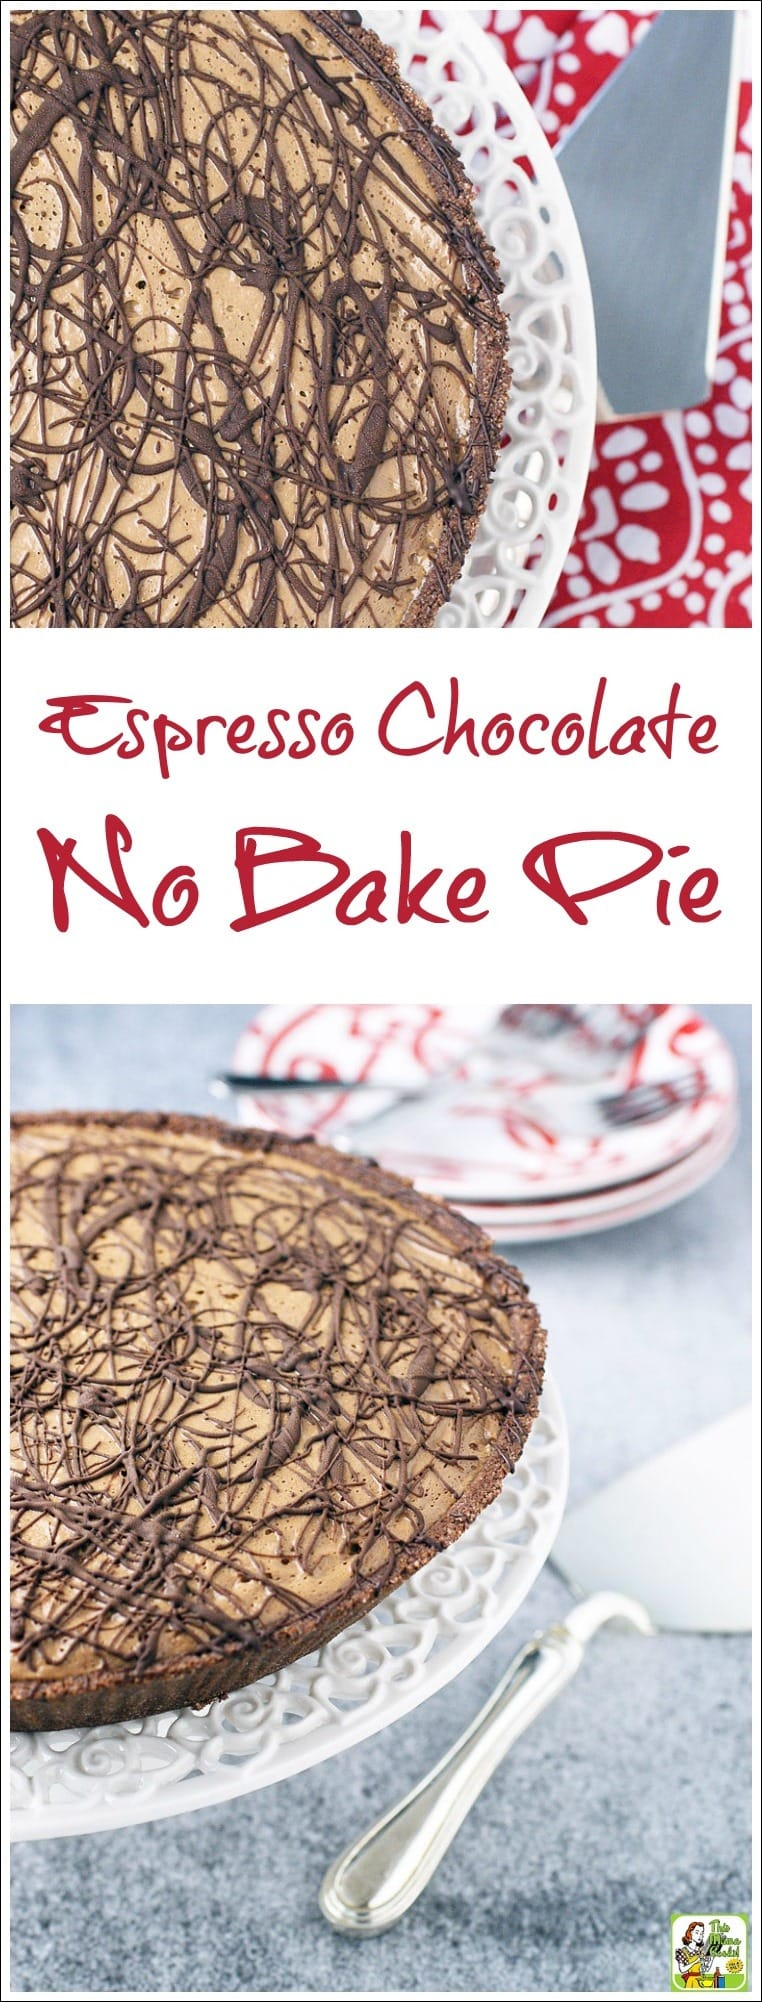 Make this quick and easy Espresso Chocolate No Bake Pie recipe. This yummy no bake dessert uses silken tofu and chocolate soymilk instead of ice cream and cow's milk. So not only will your vegan and vegetarian friends ask for the recipe, but so will anyone who can't tolerate dairy products. #baking #pie #dairyfree #veganfood #vegan #veganrecipes #vegandesserts #glutenfree #recipe #recipes #coffee #chocolate #tofu